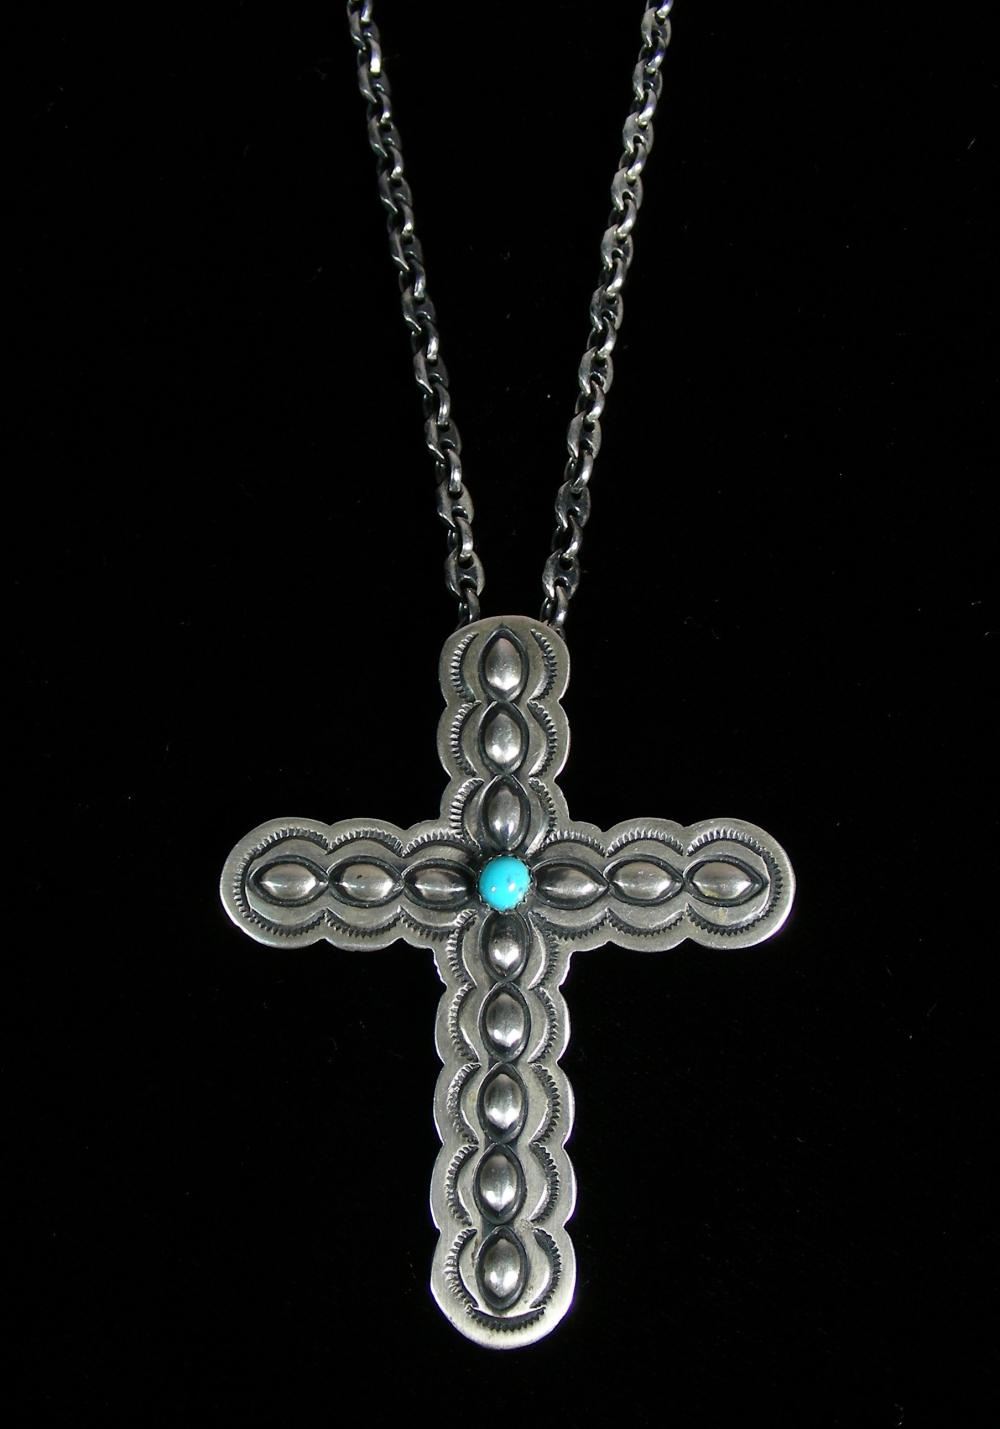 VINGAGE STERLING SILVER & TURQUOISE CROSS NECKLACE